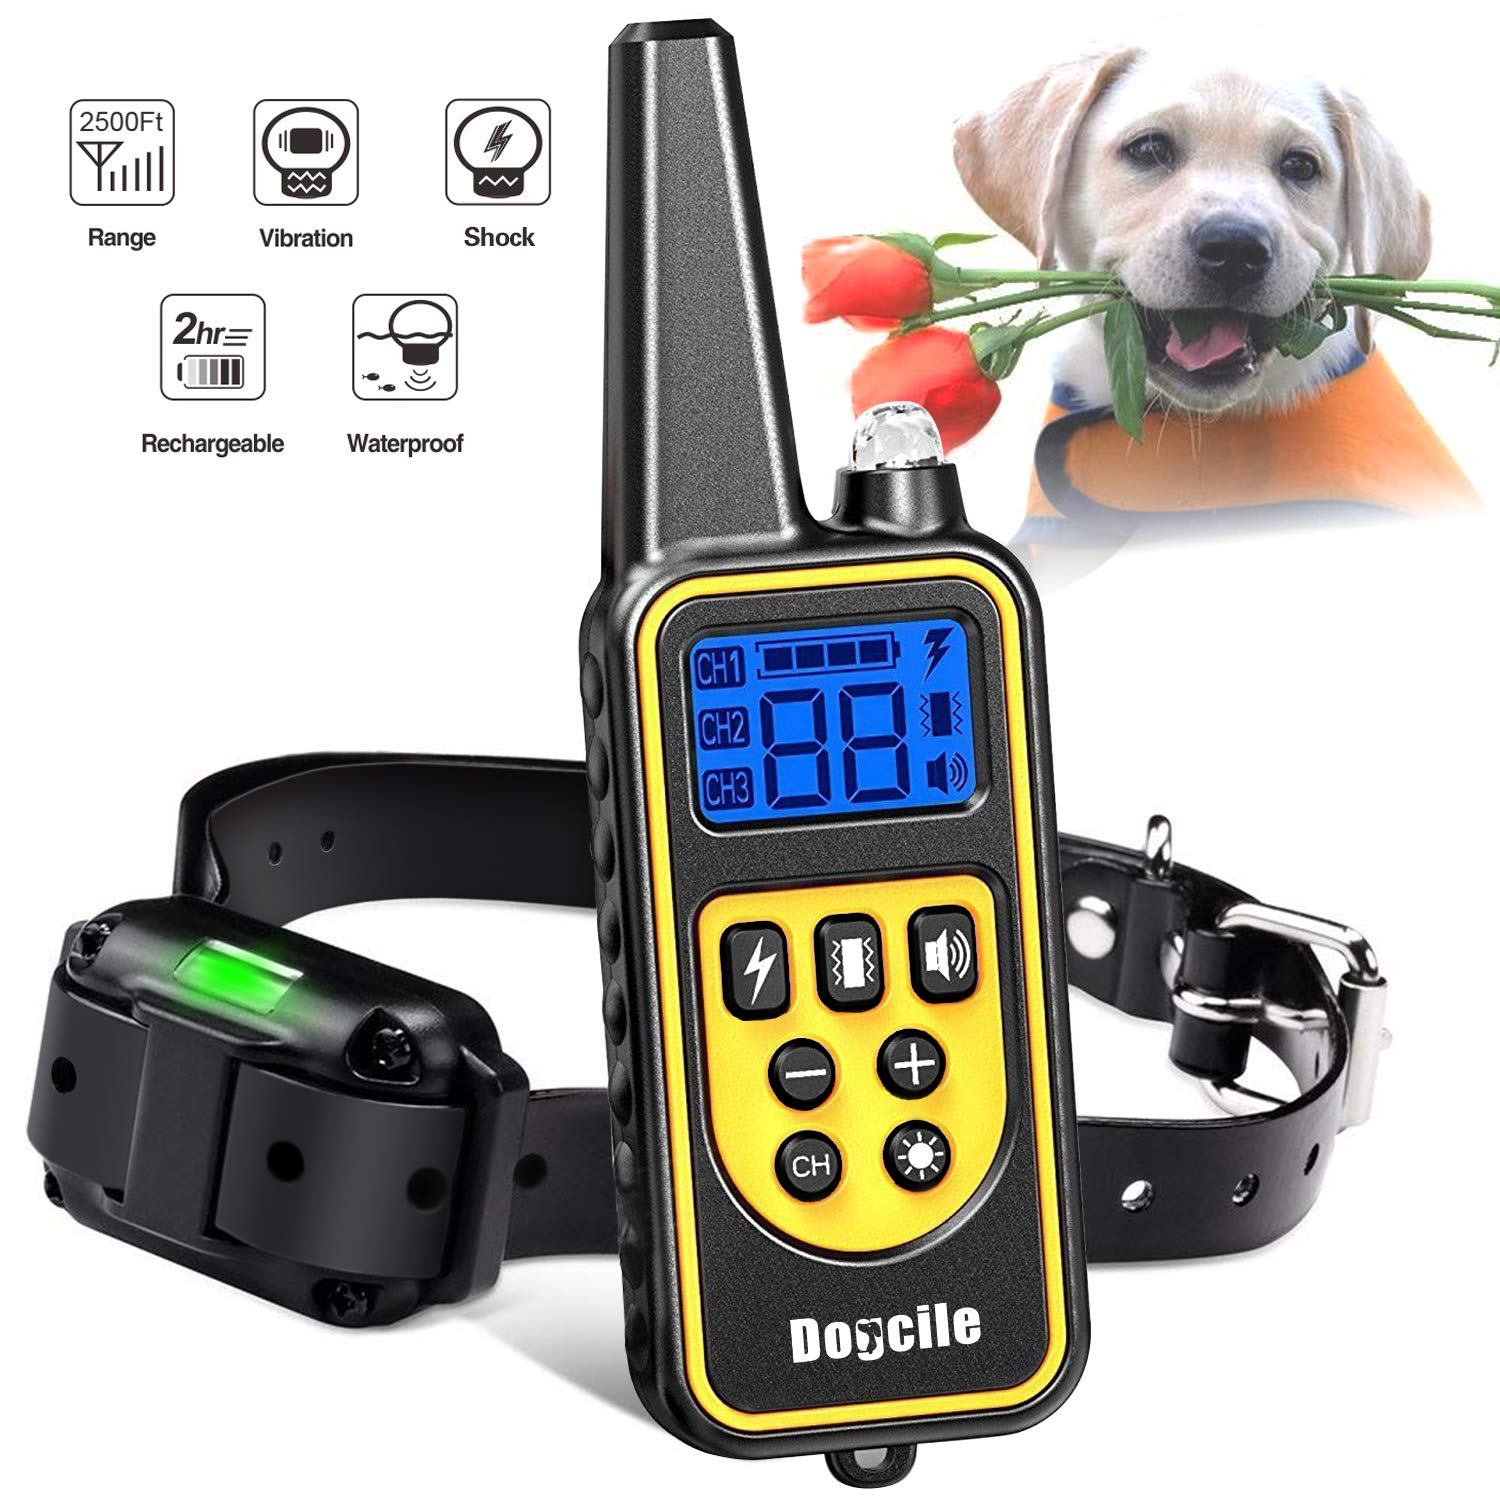 YISENCE Shock Collar for Dogs, Dog Shock Collar with Remote 2500FT Range, Waterproof and Rechargeable, Beep, Vibrate and Shock, Dog Training Collar with Remote